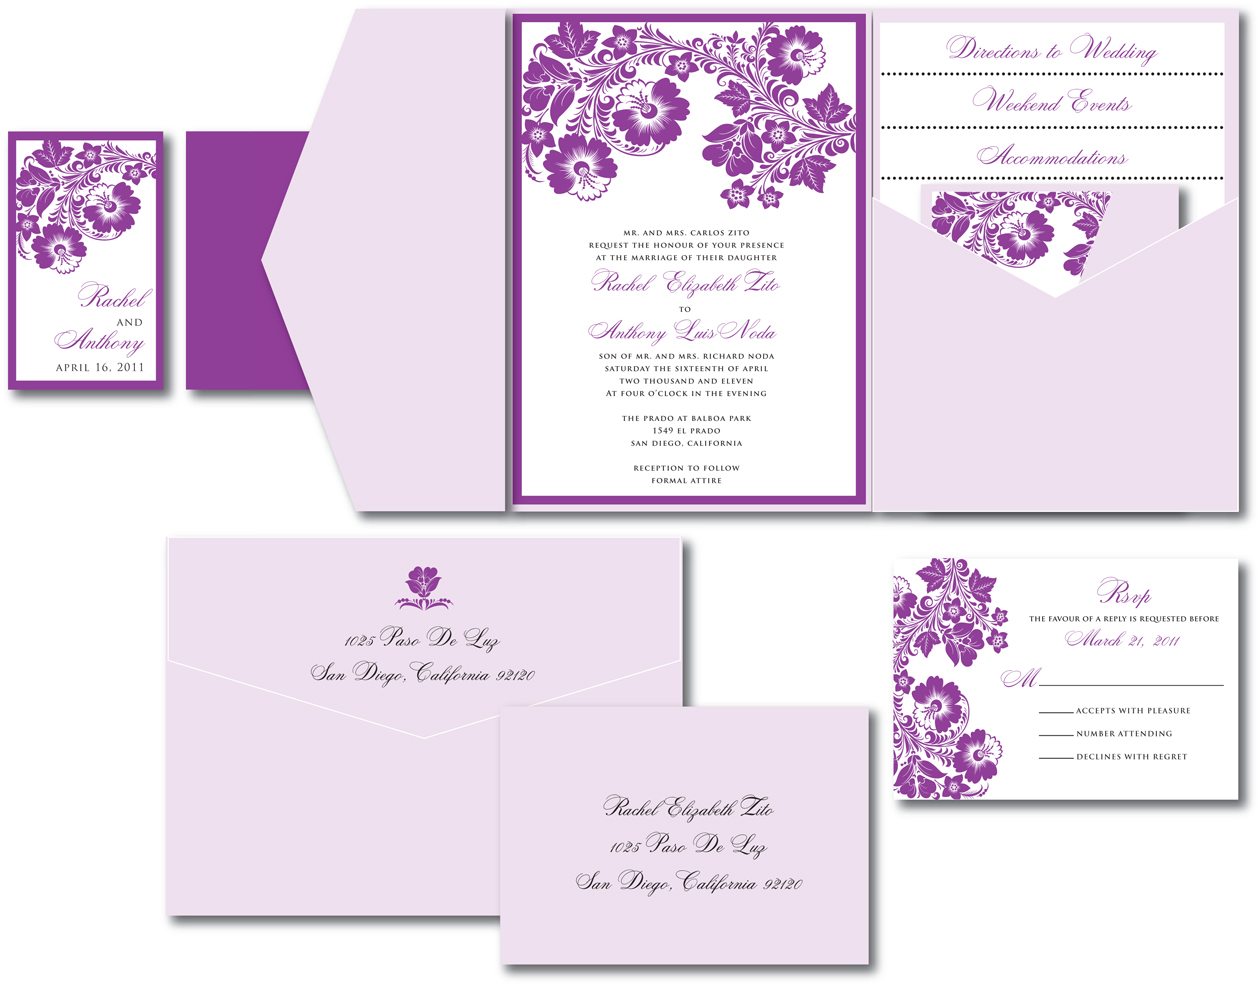 Purple & Lavender Wedding Invitation with Floral Accents – A Vibrant ...